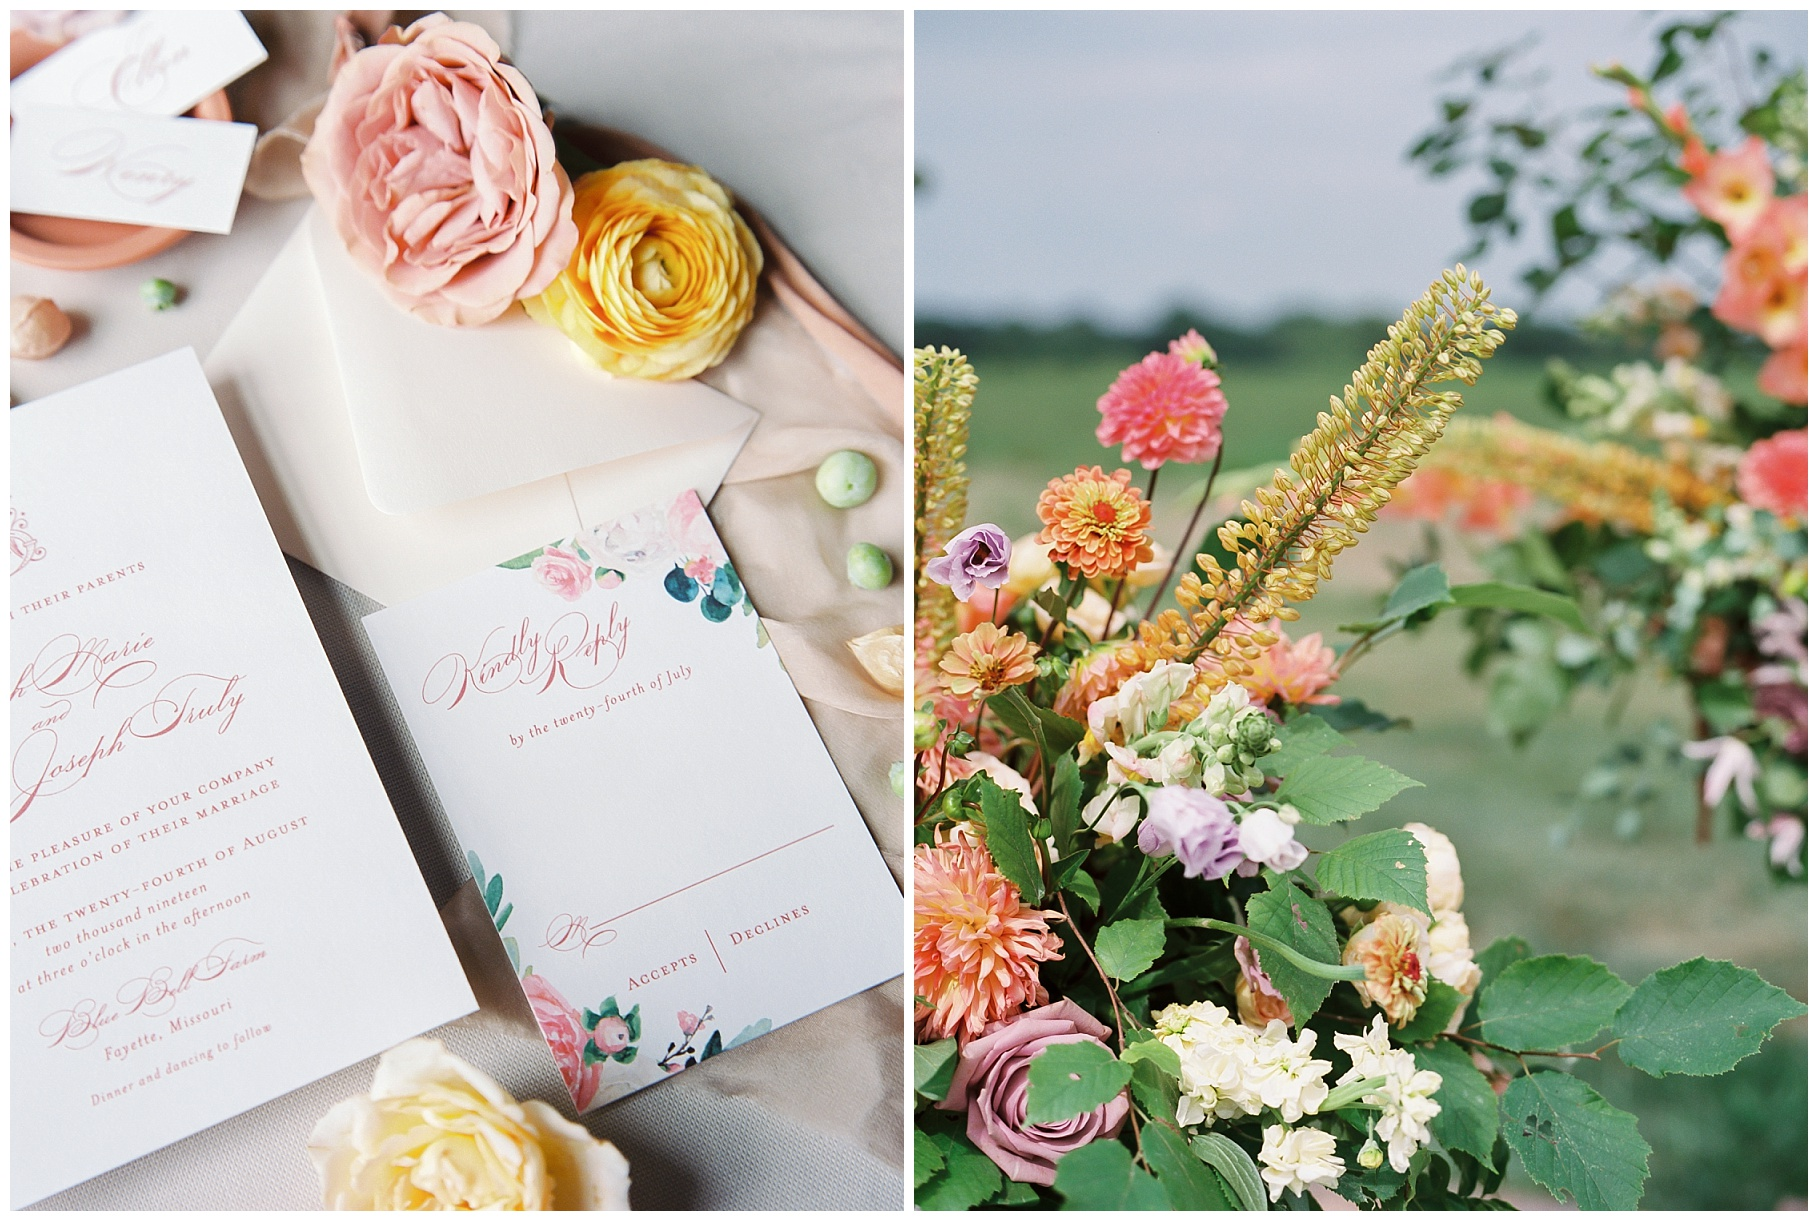 Late Summer Wedding With Pastel Toned Soiree at Blue Bell Farm by Kelsi Kliethermes Photography Best Columbia Missouri Wedding Photographer_0087.jpg